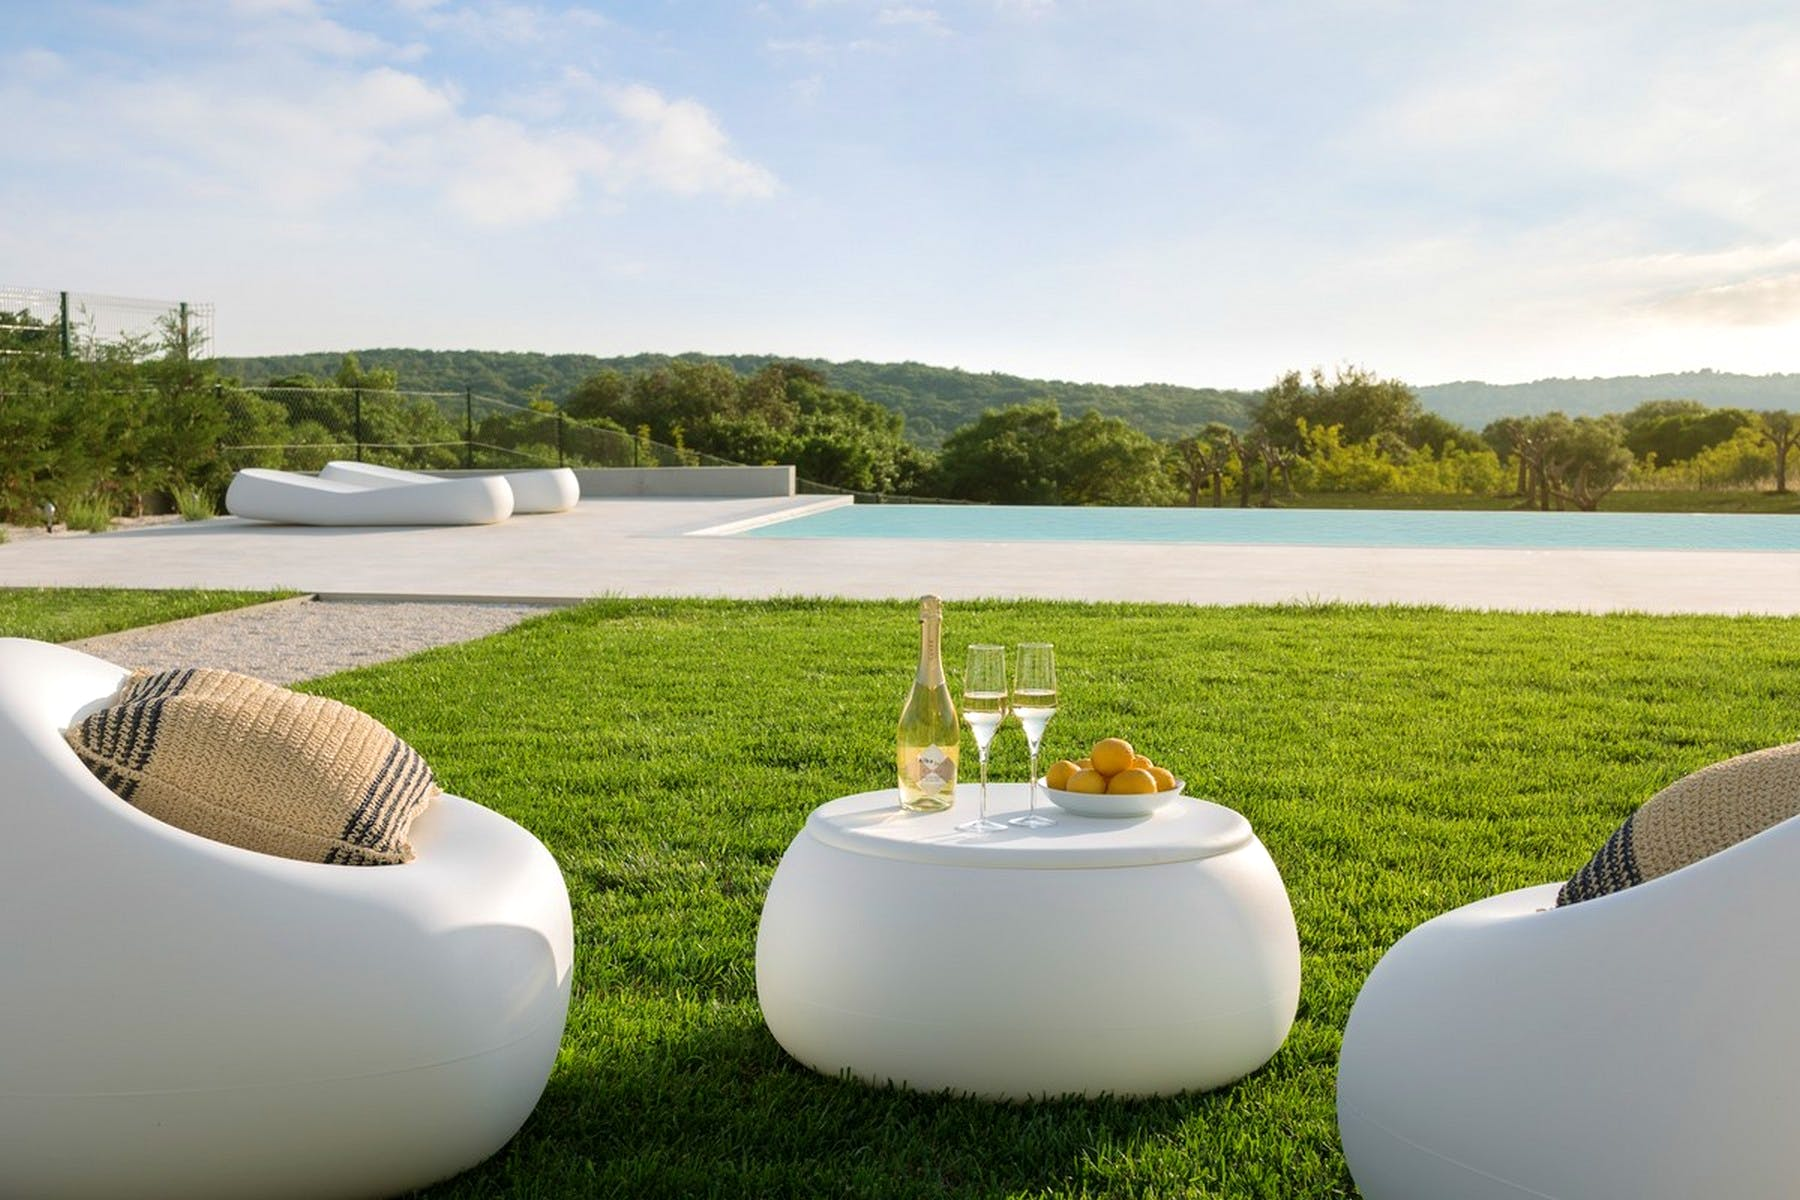 A place to enjoy drinks by the pool